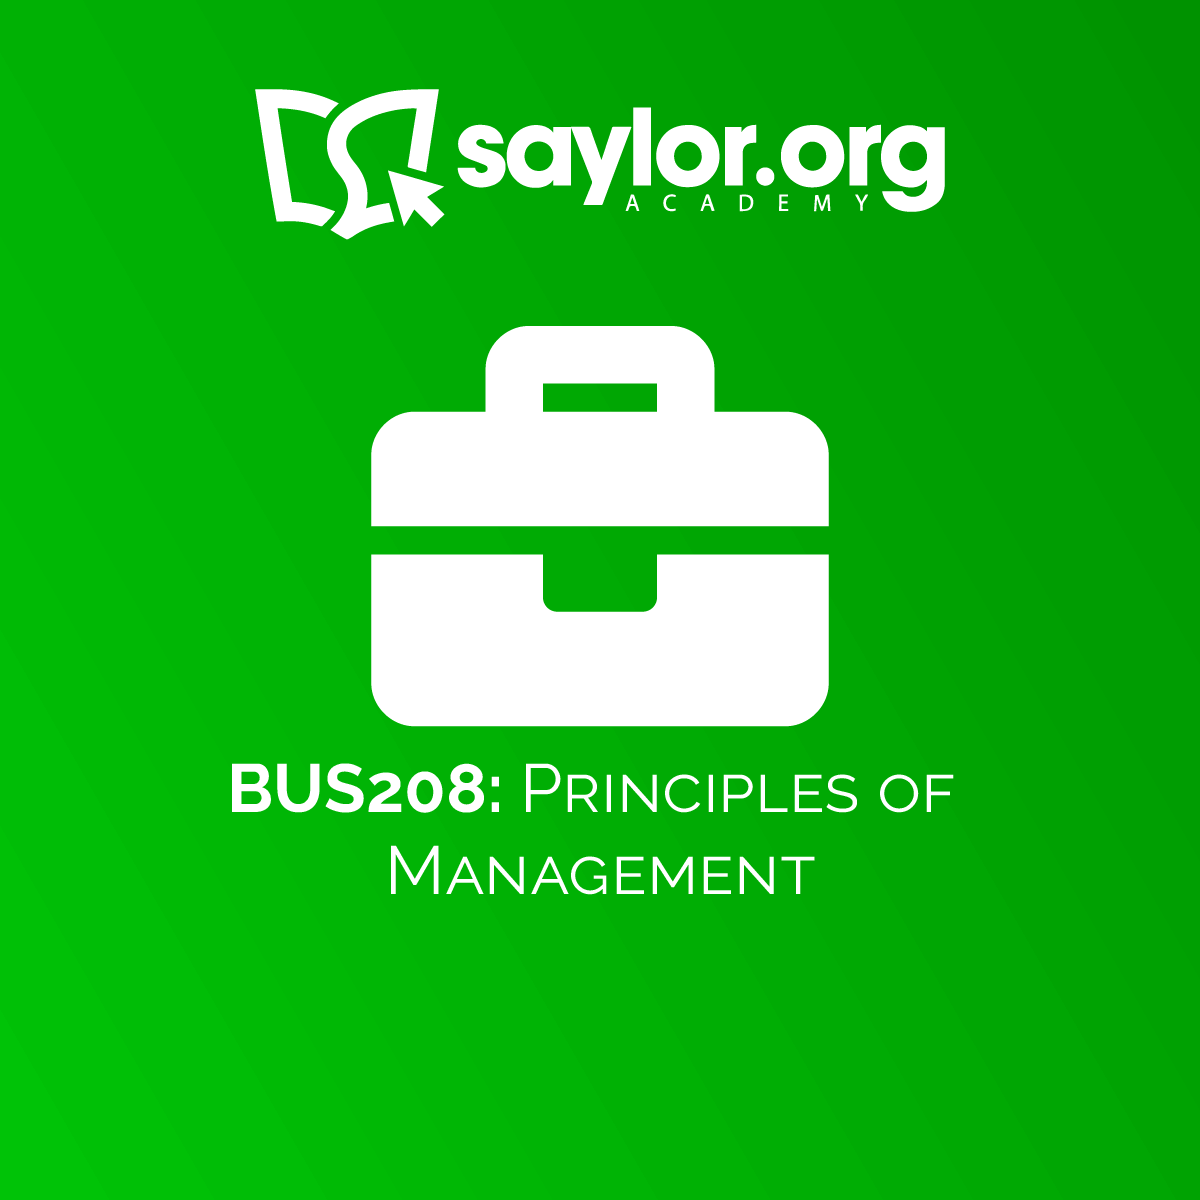 BUS208: Principles of Management, Topic: Unit 2: Historical